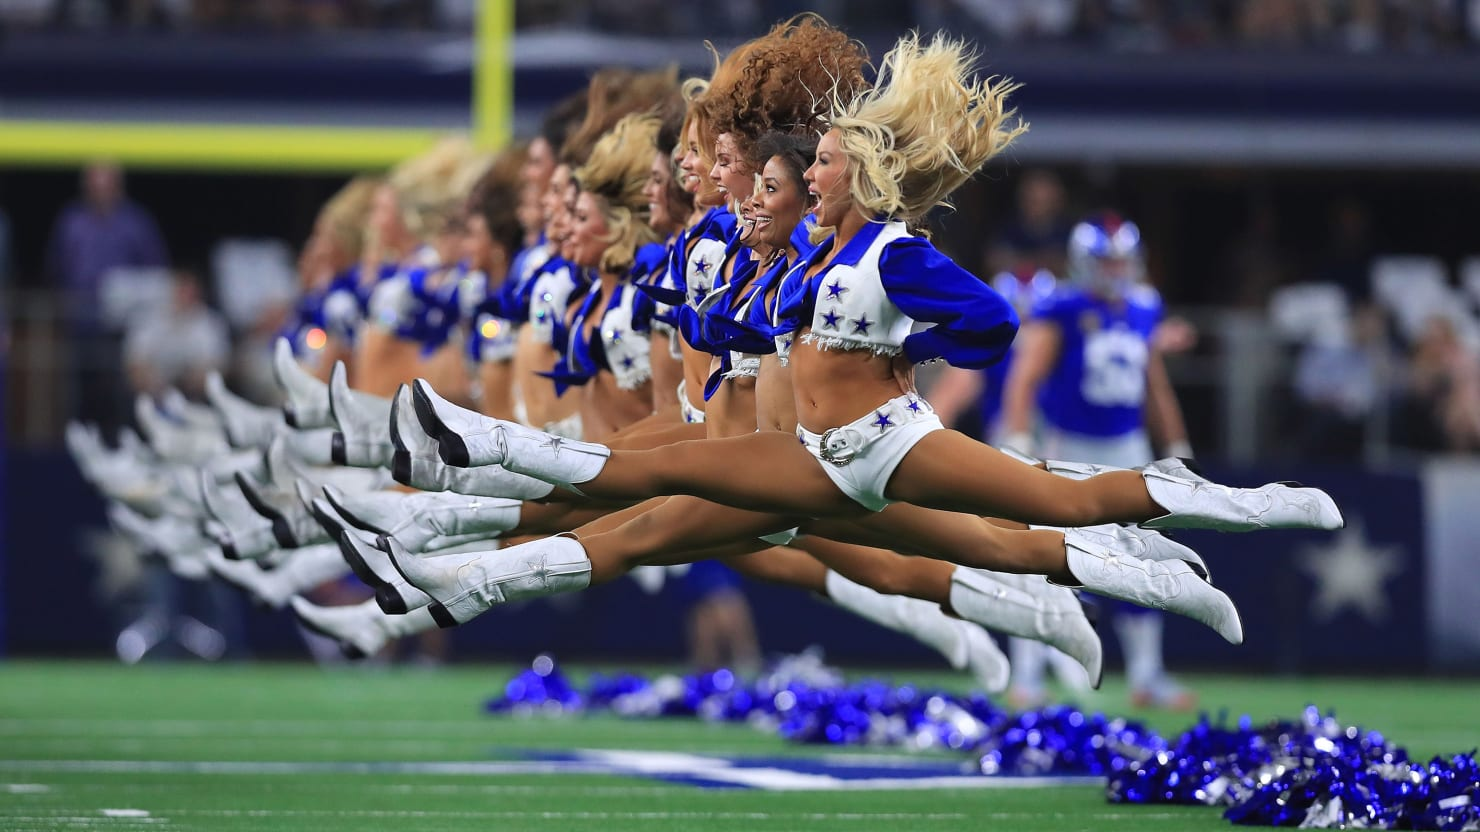 Dallas Auto Show >> 'Dallas Cowboys Cheerleaders: Making the Team': Why America Can't Quit the Dallas Cowboys ...